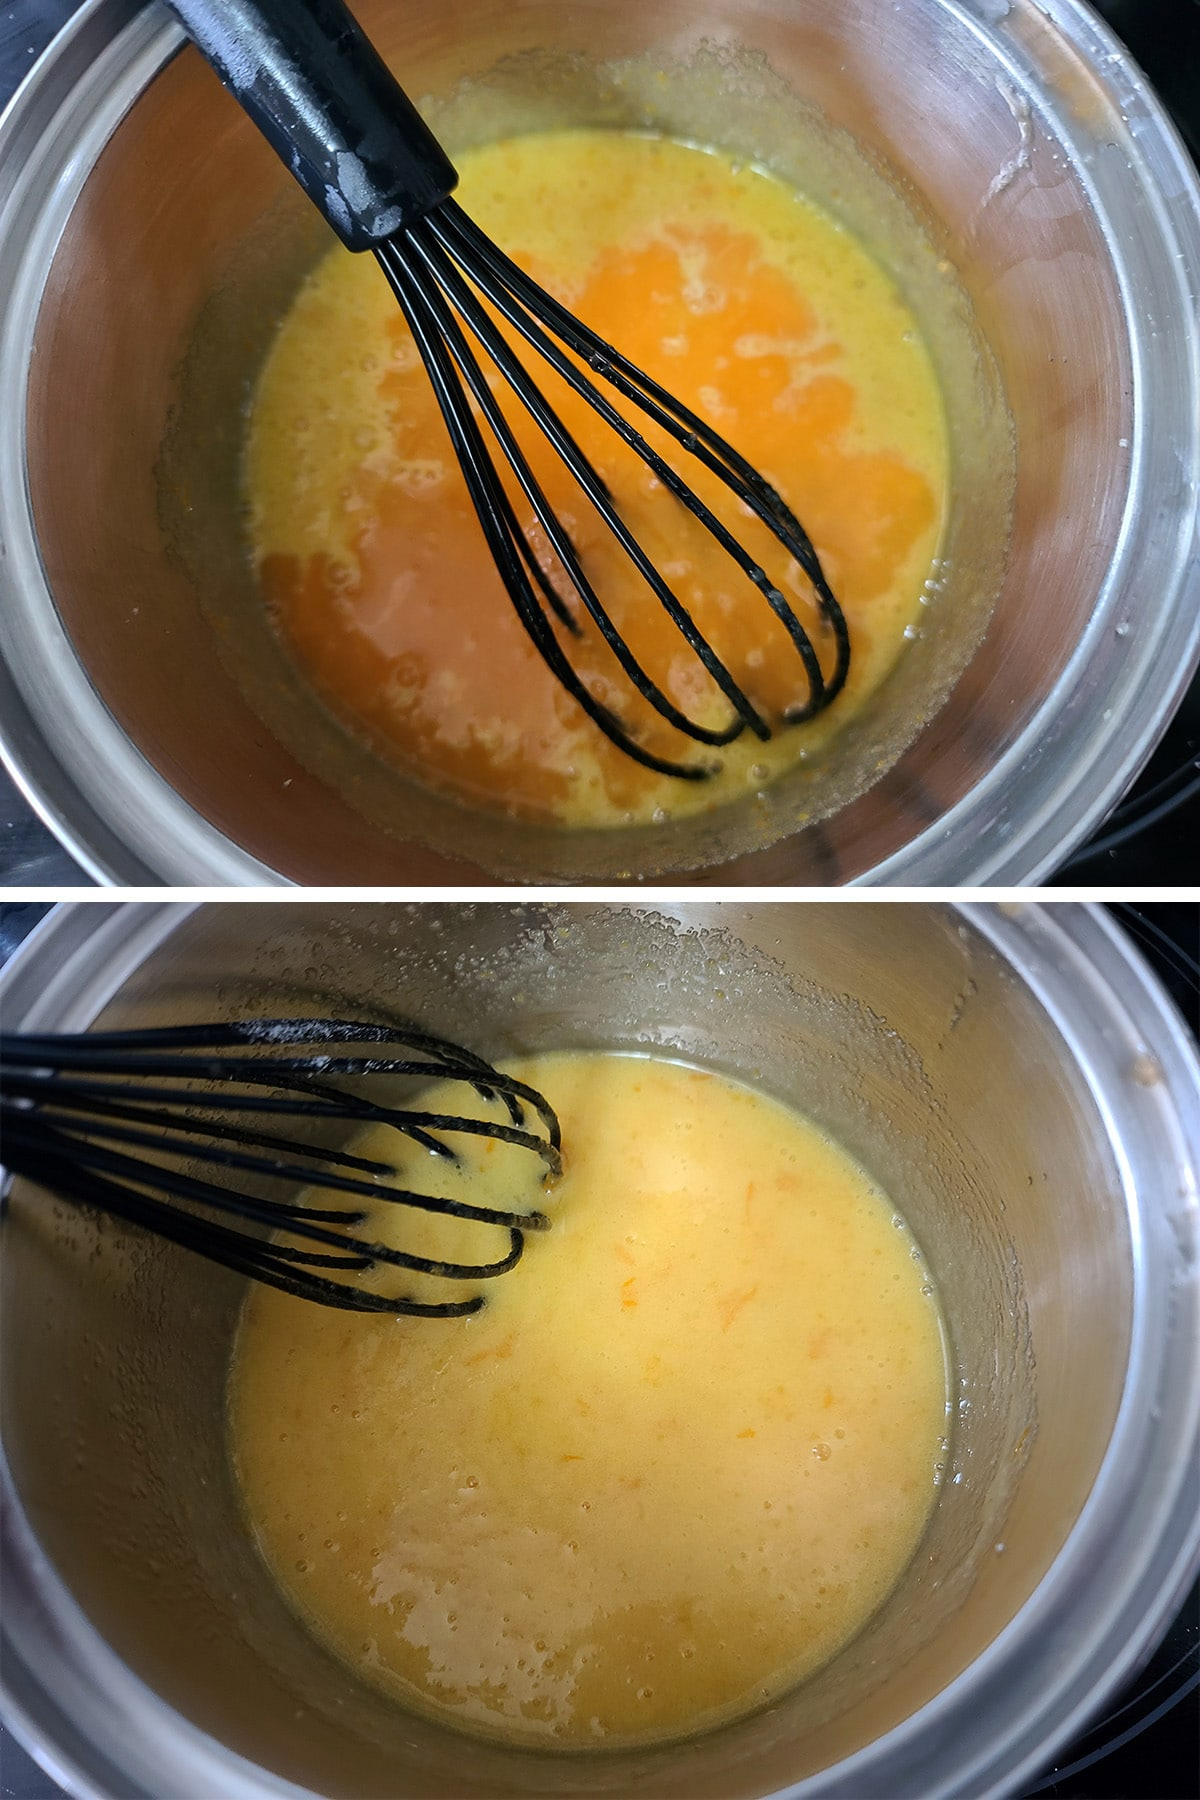 Orange juice being added to the egg mixture and whisked in.